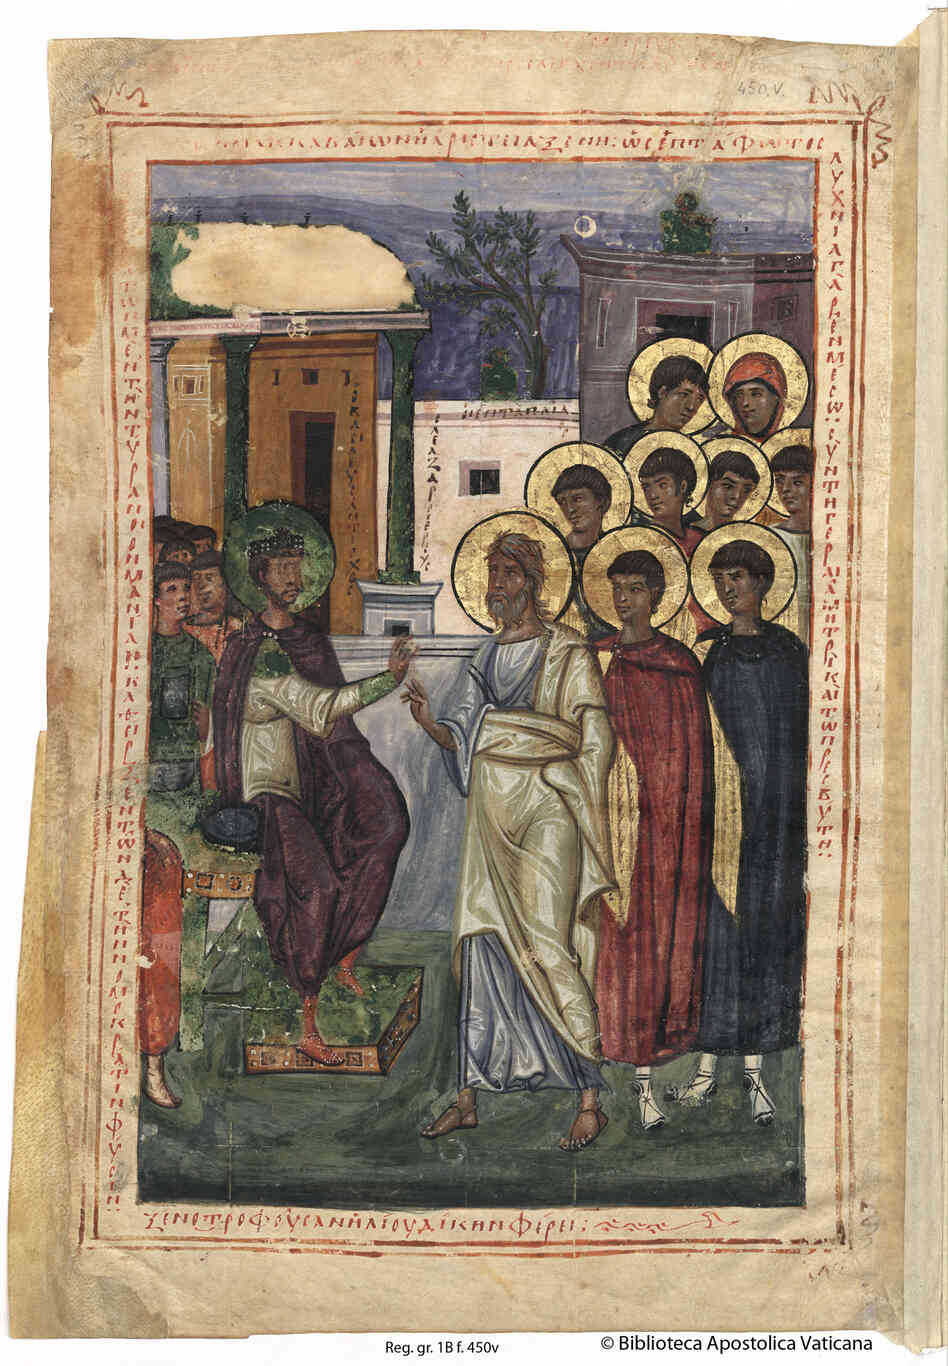 An illustration from The Reginensis Graecus 1, a 10th century Greek Bible that is among the texts included in the digitization project.